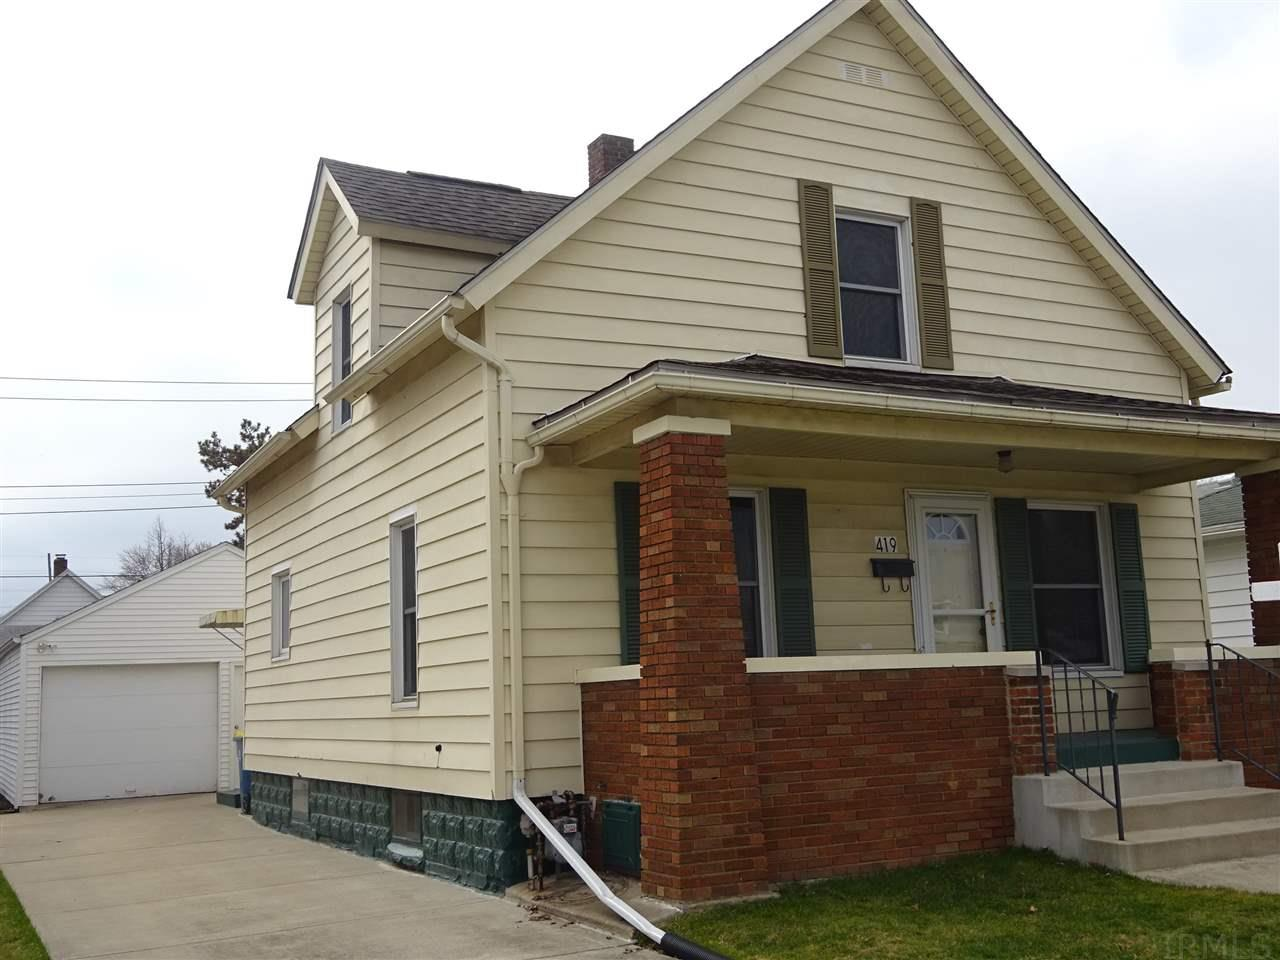 419 W 11th Mishawaka, IN 46544